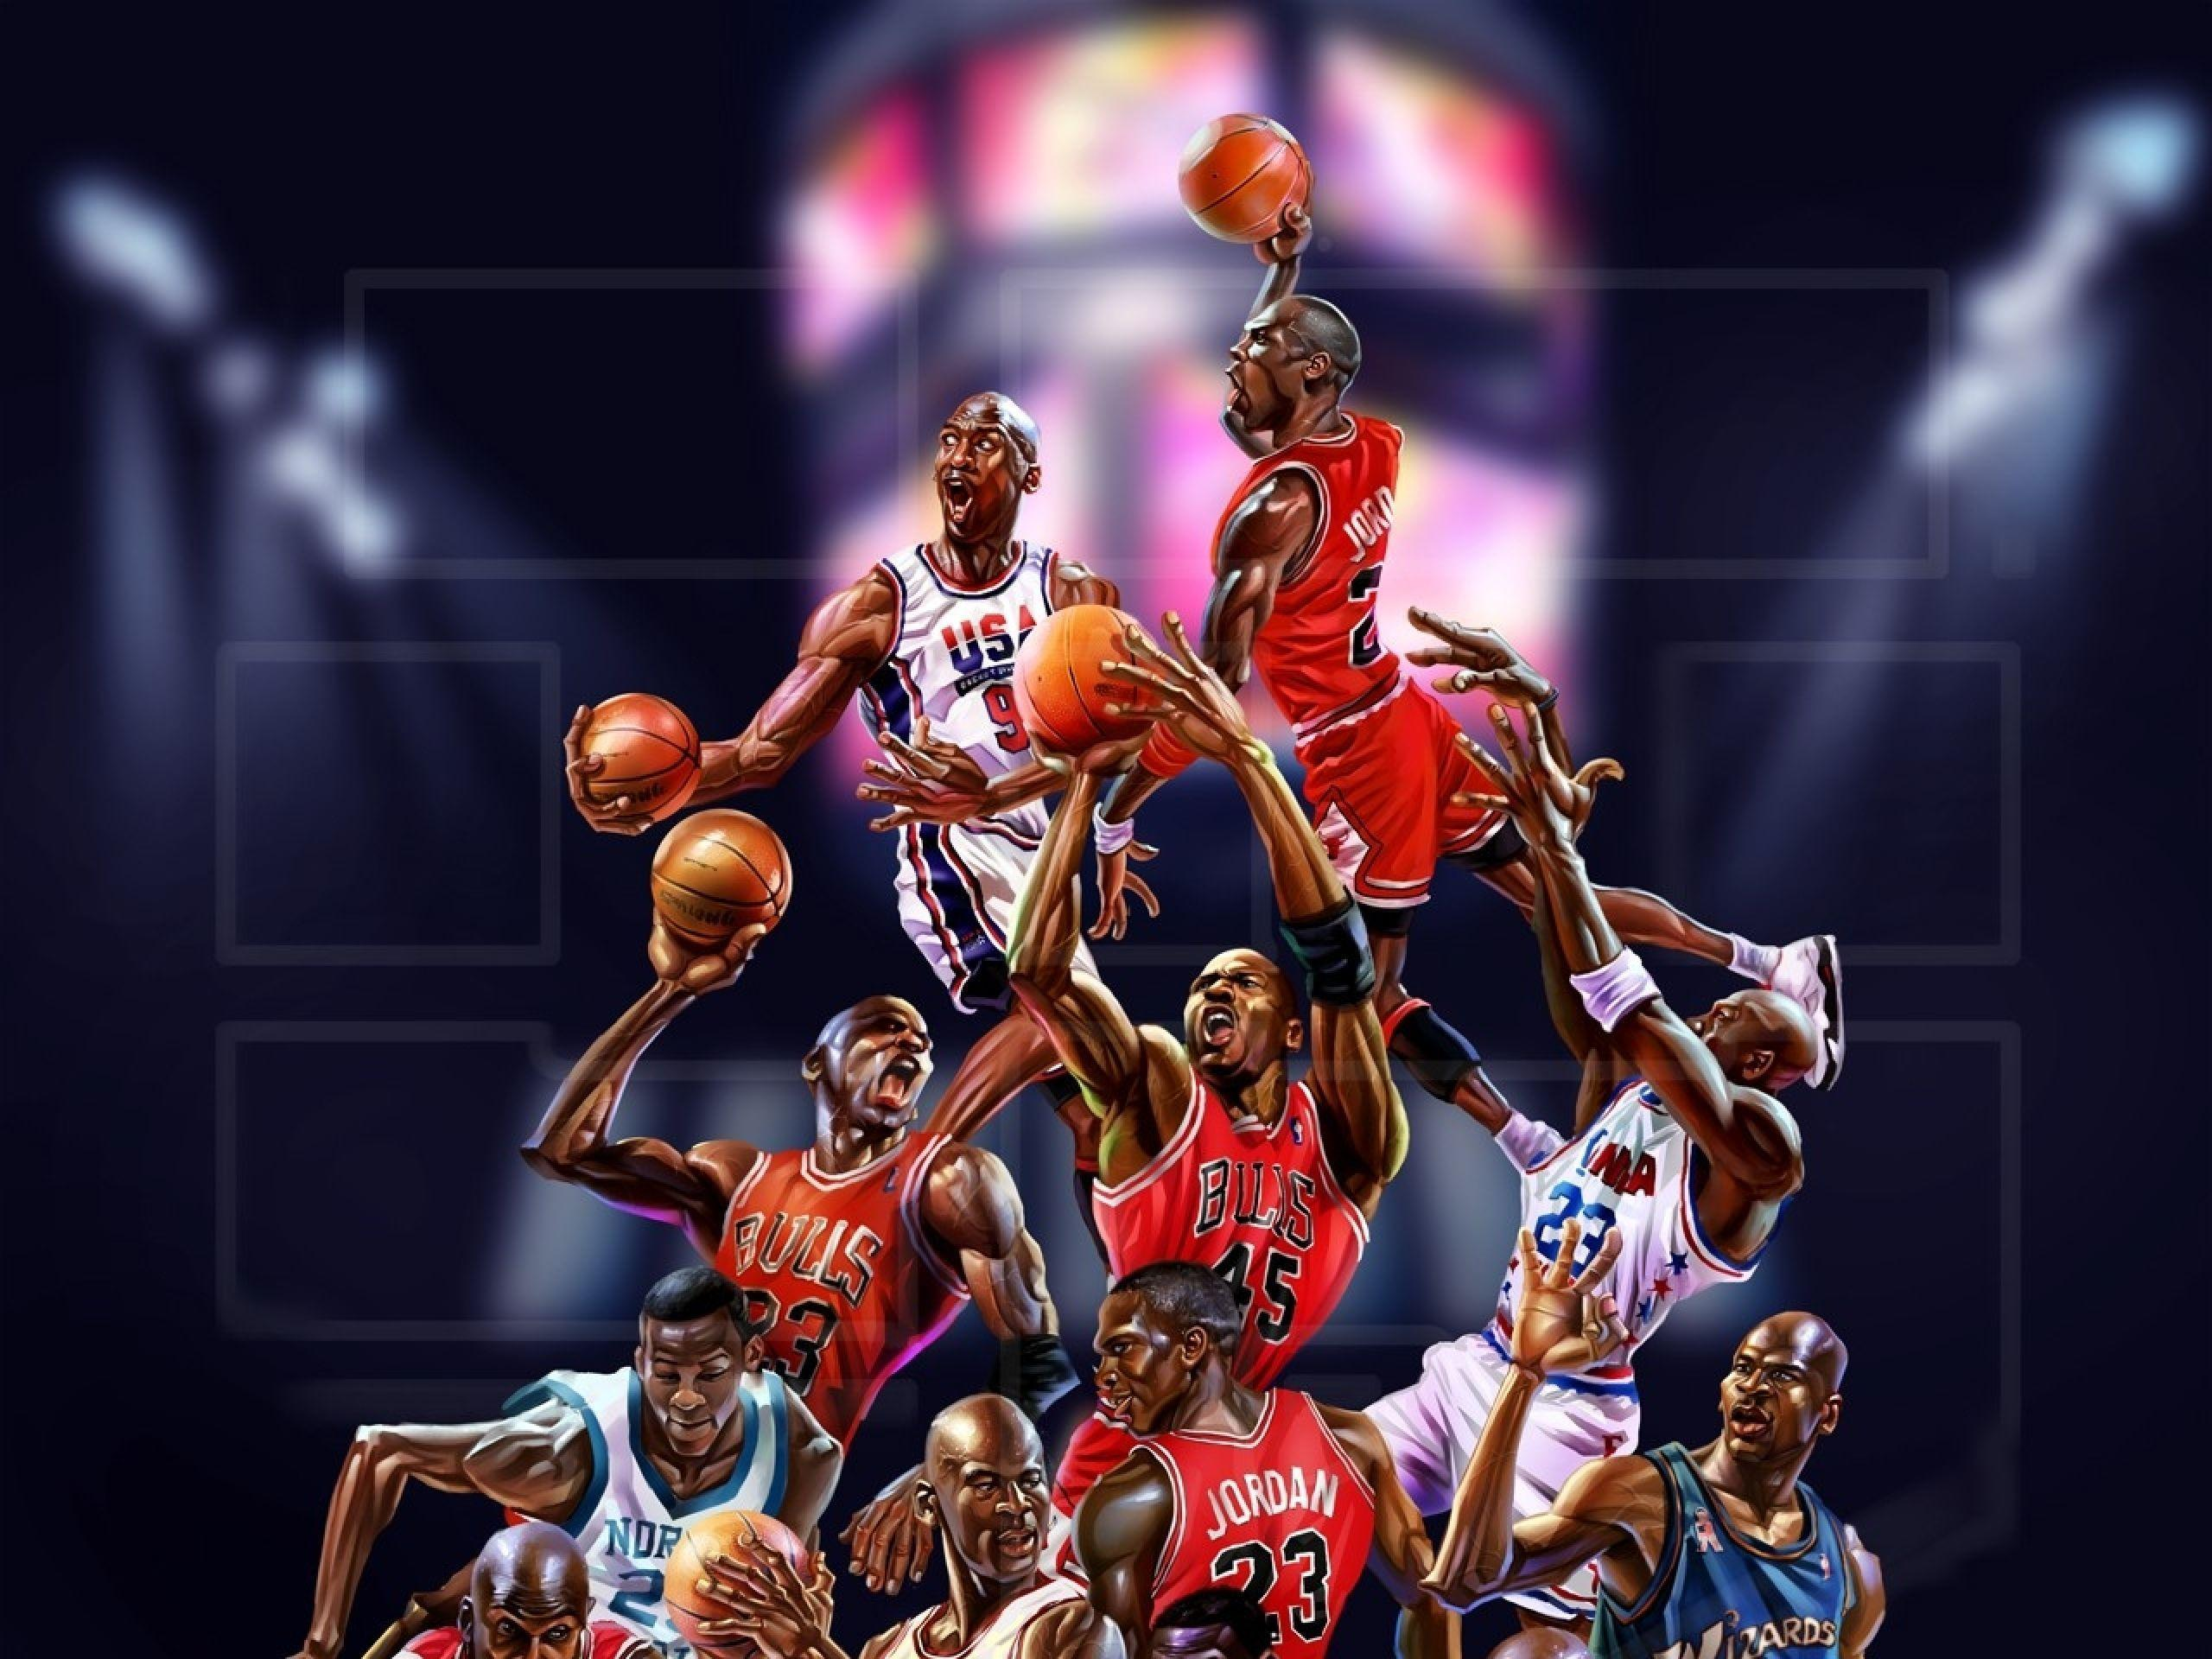 NBA Wallpapers 2016 - Wallpaper Cave